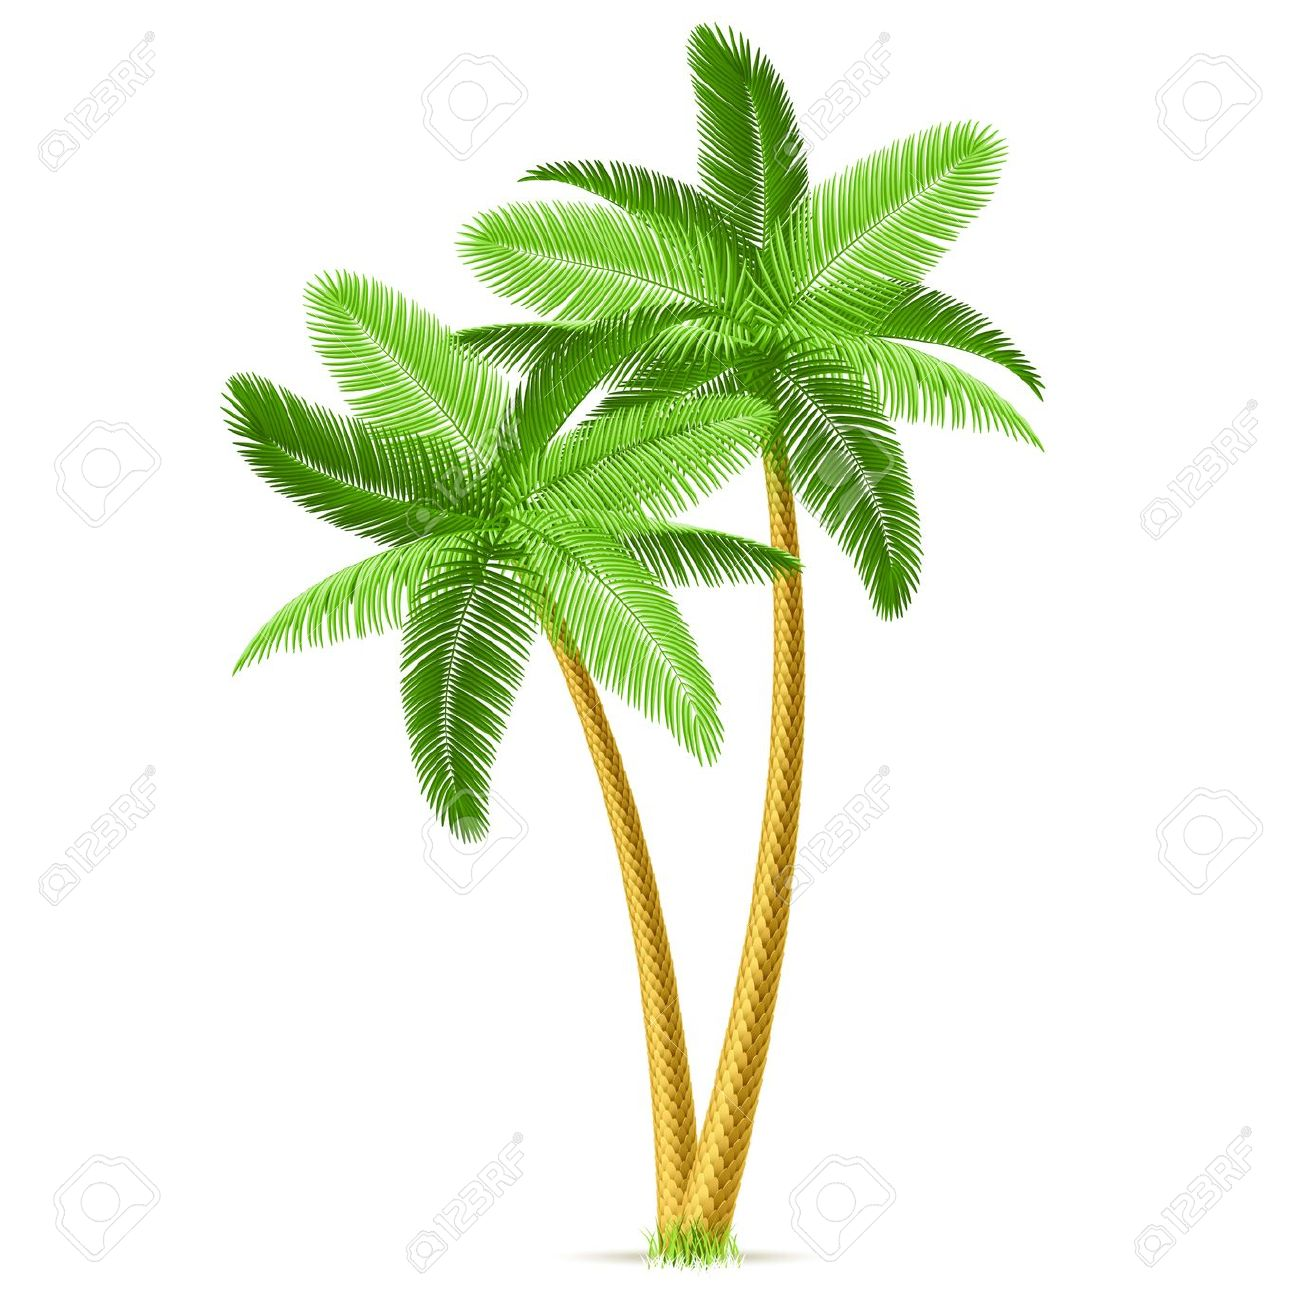 Tropical Palm Trees Royalty Free Cliparts, Vectors, And Stock.